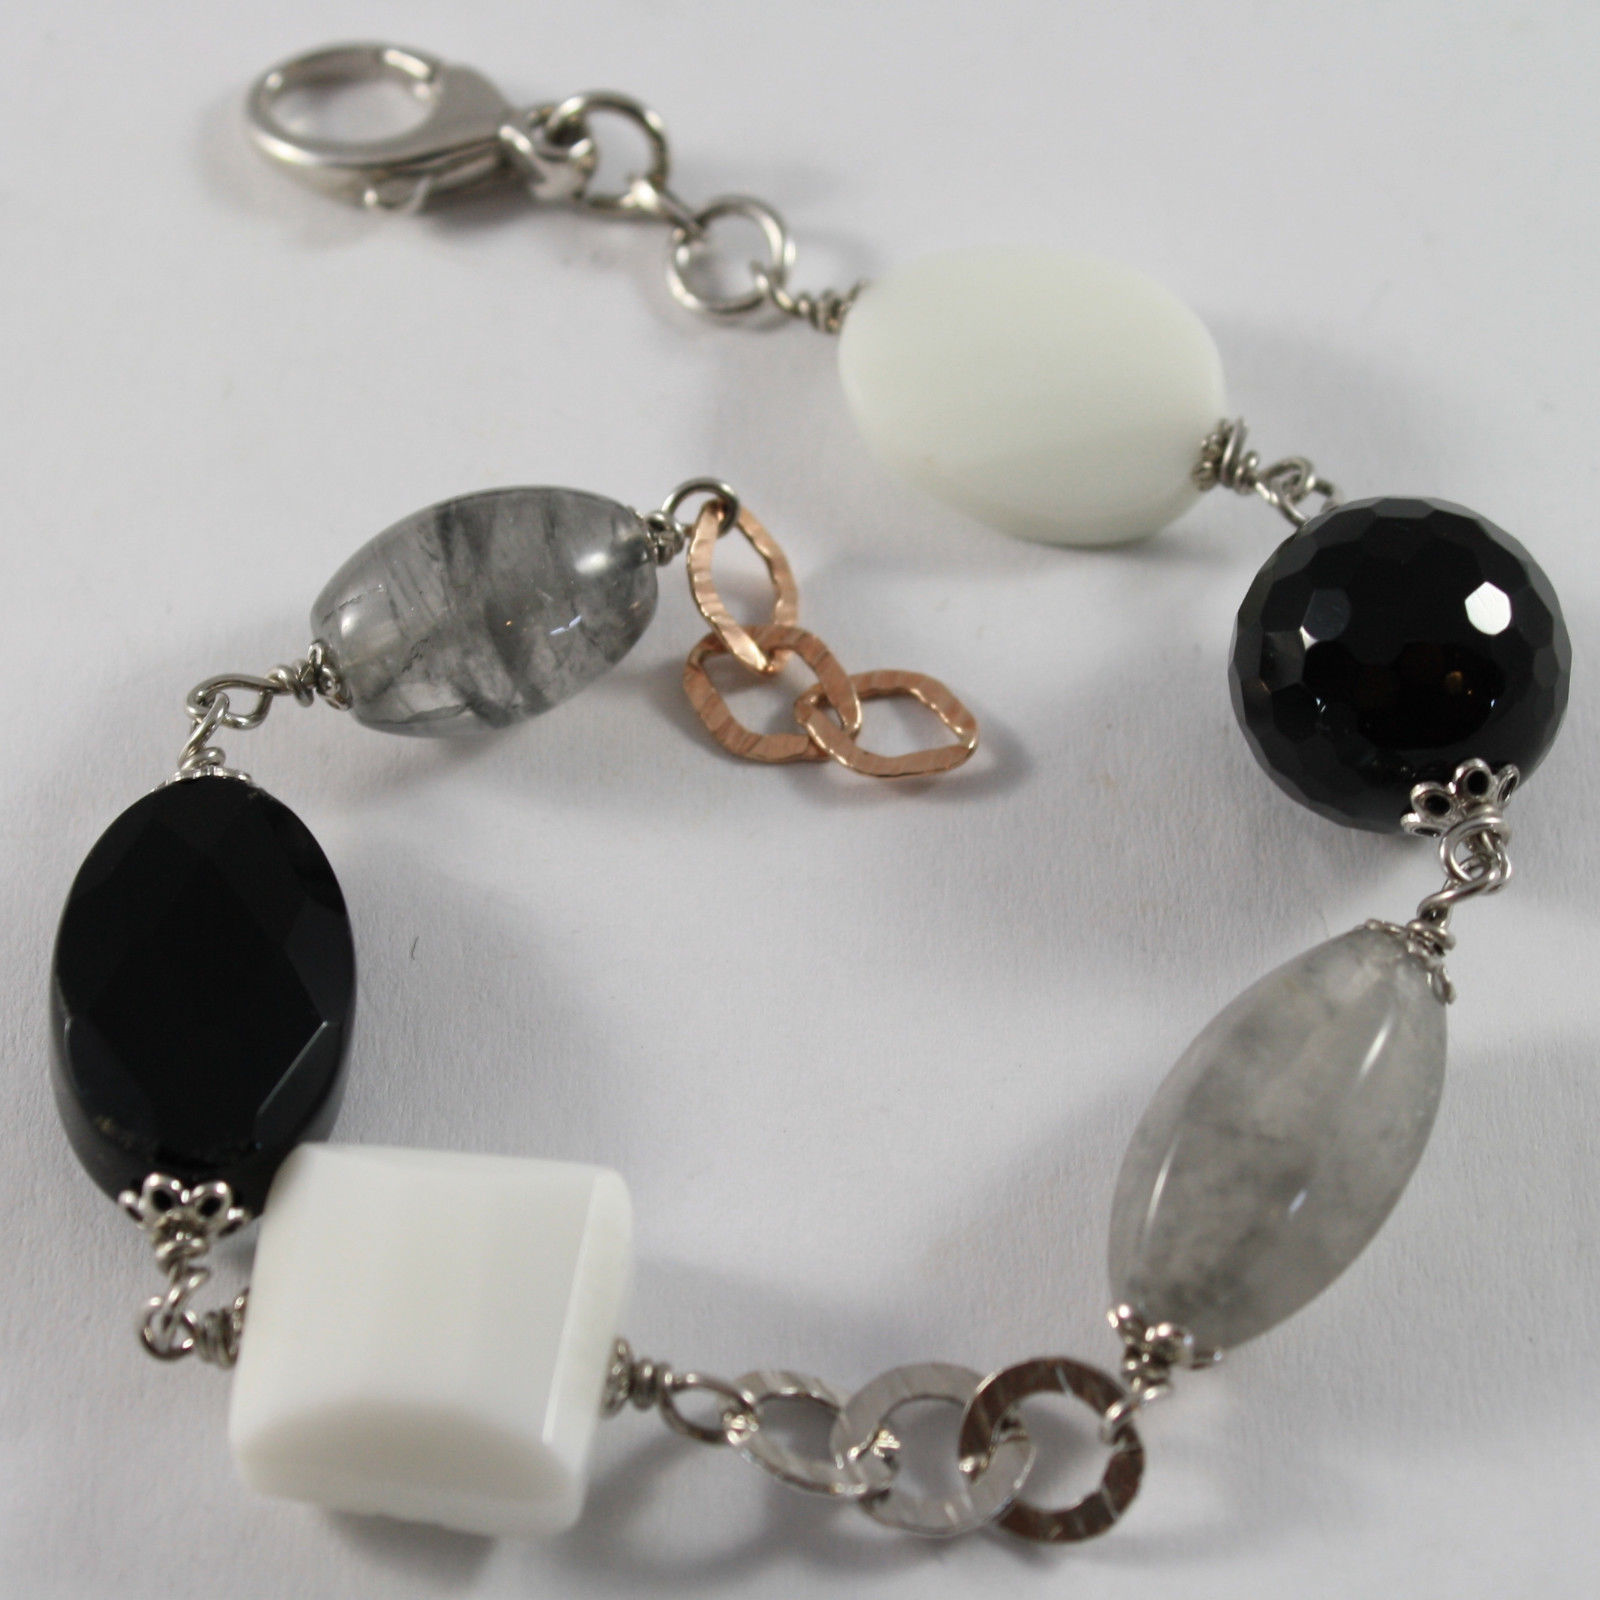 .925 RHODIUM SILVER BRACELET WITH BLACK ONYX, WHITE AGATE AND GRAY QUARTZ